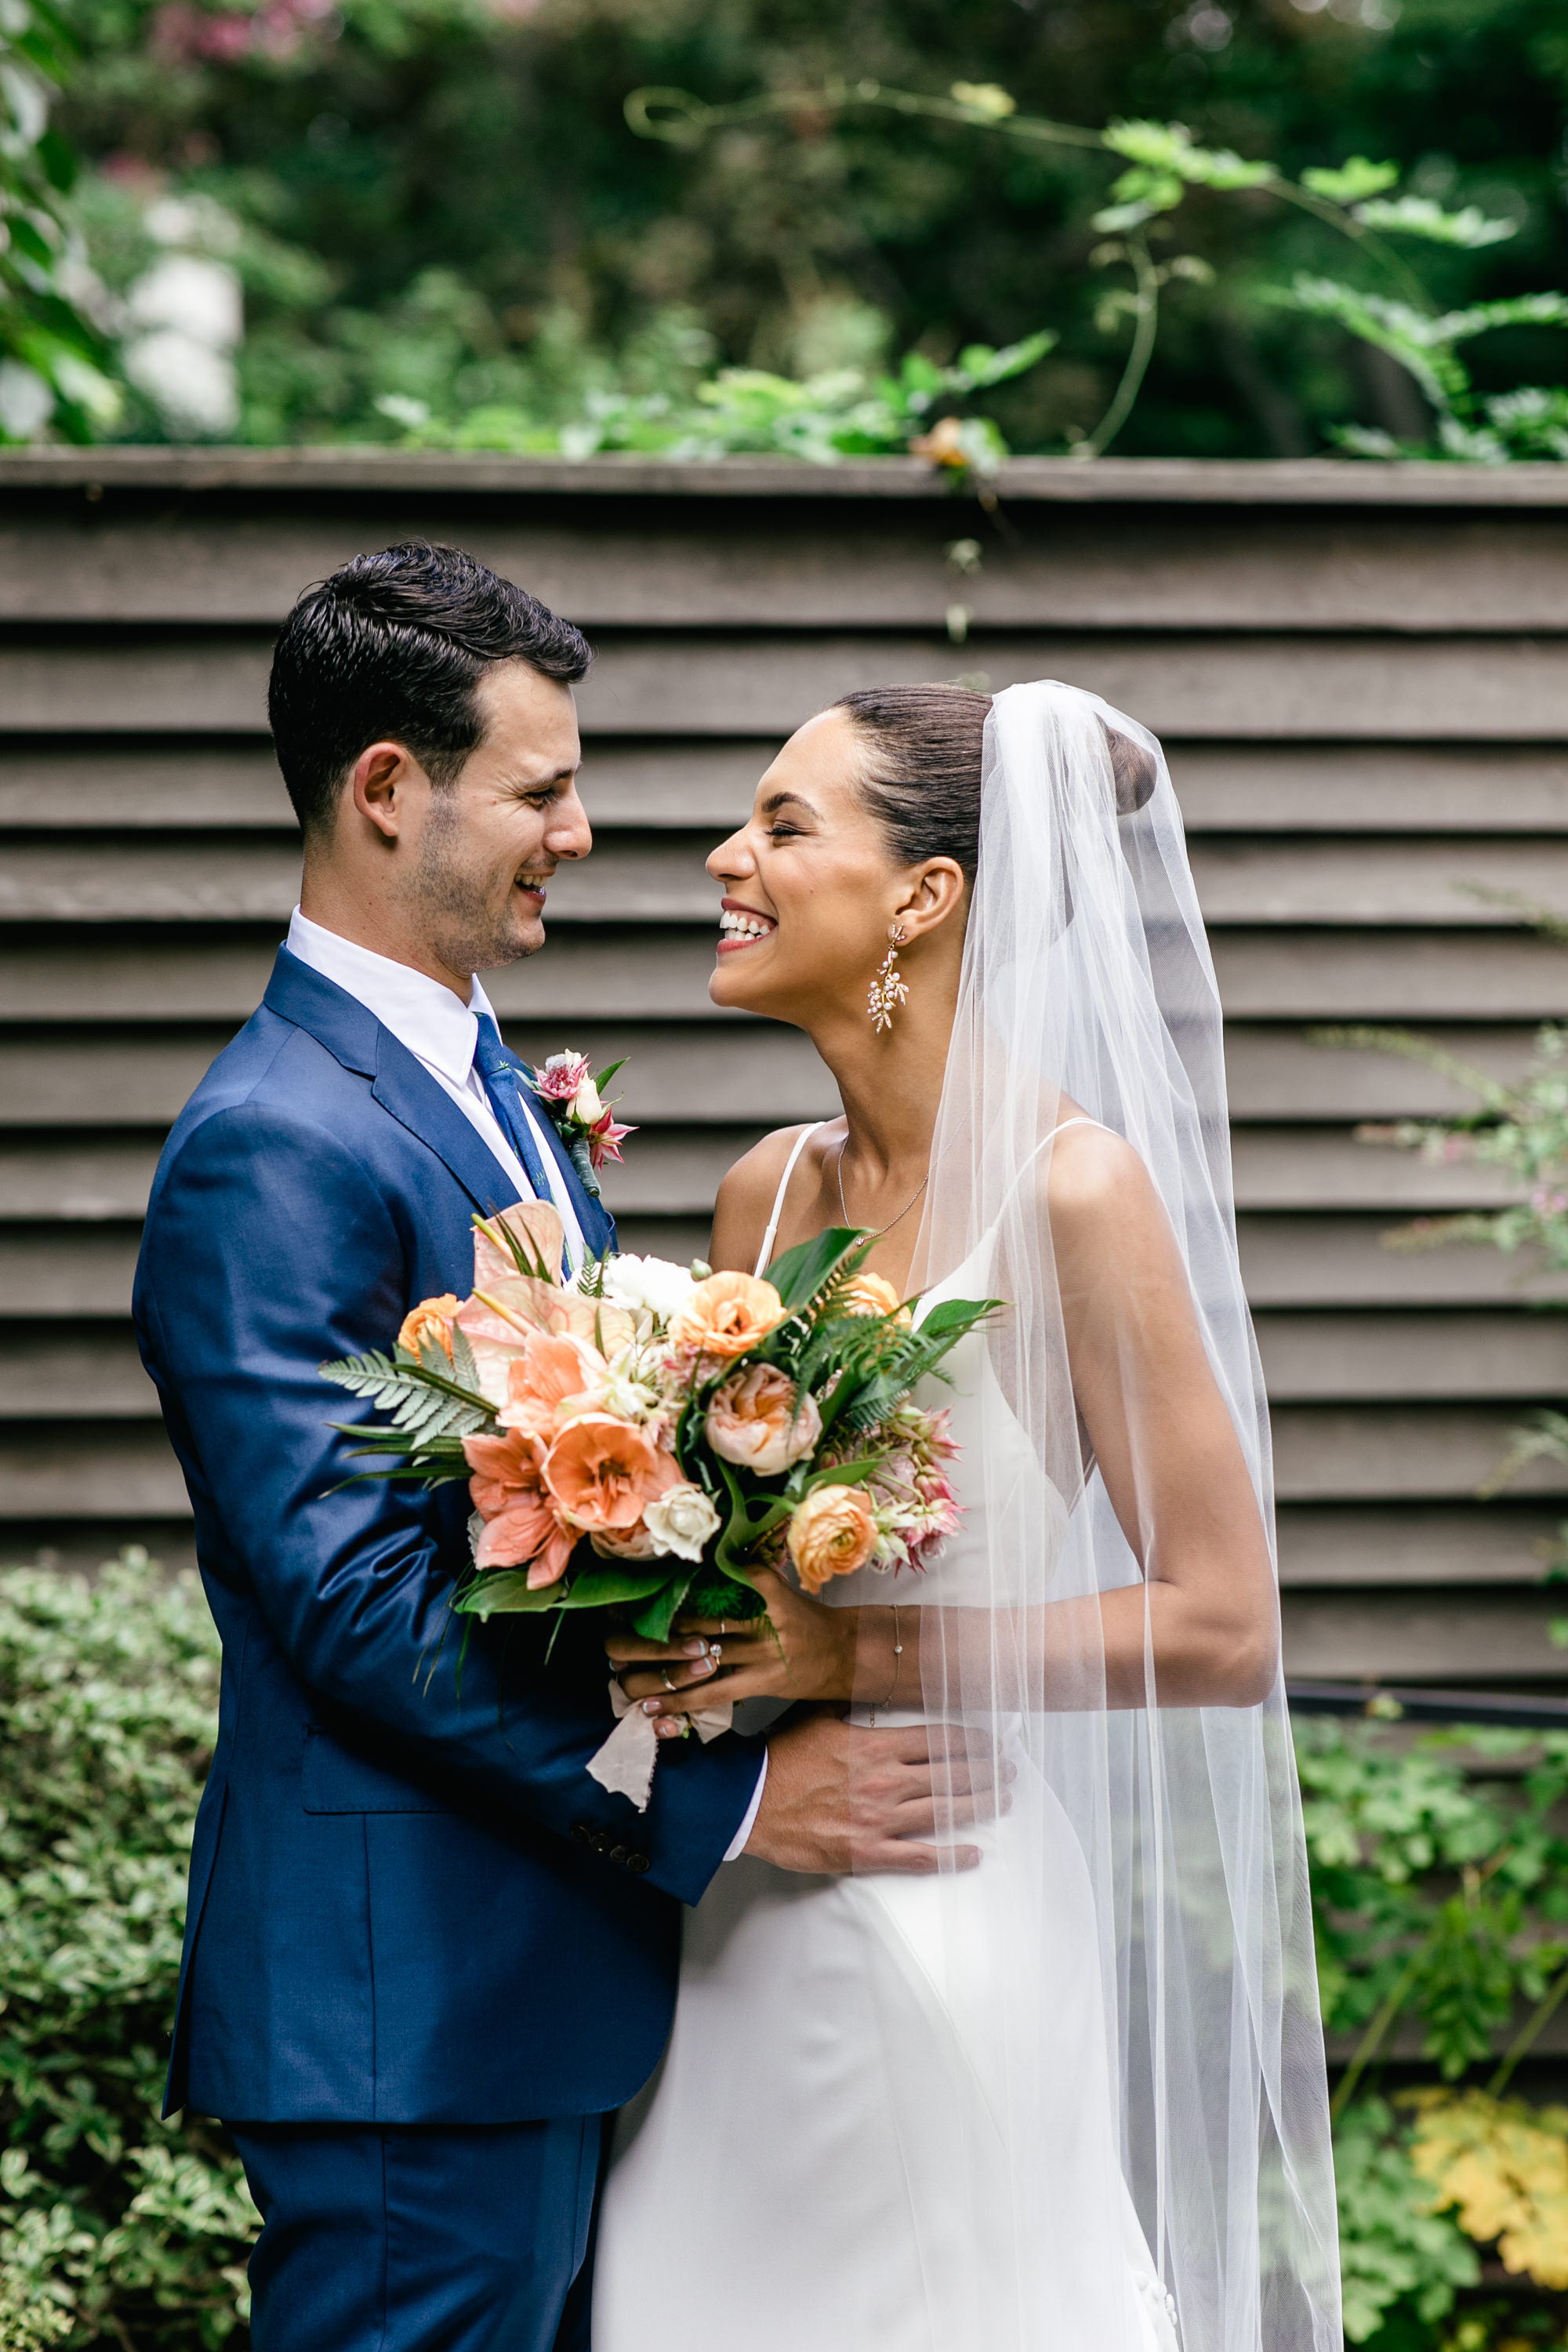 photography-wedding-weddings-natural-candid-dock 5 dc-washington dc-philadelphia-mixed race-editorial-modern-fine-art-018.JPG